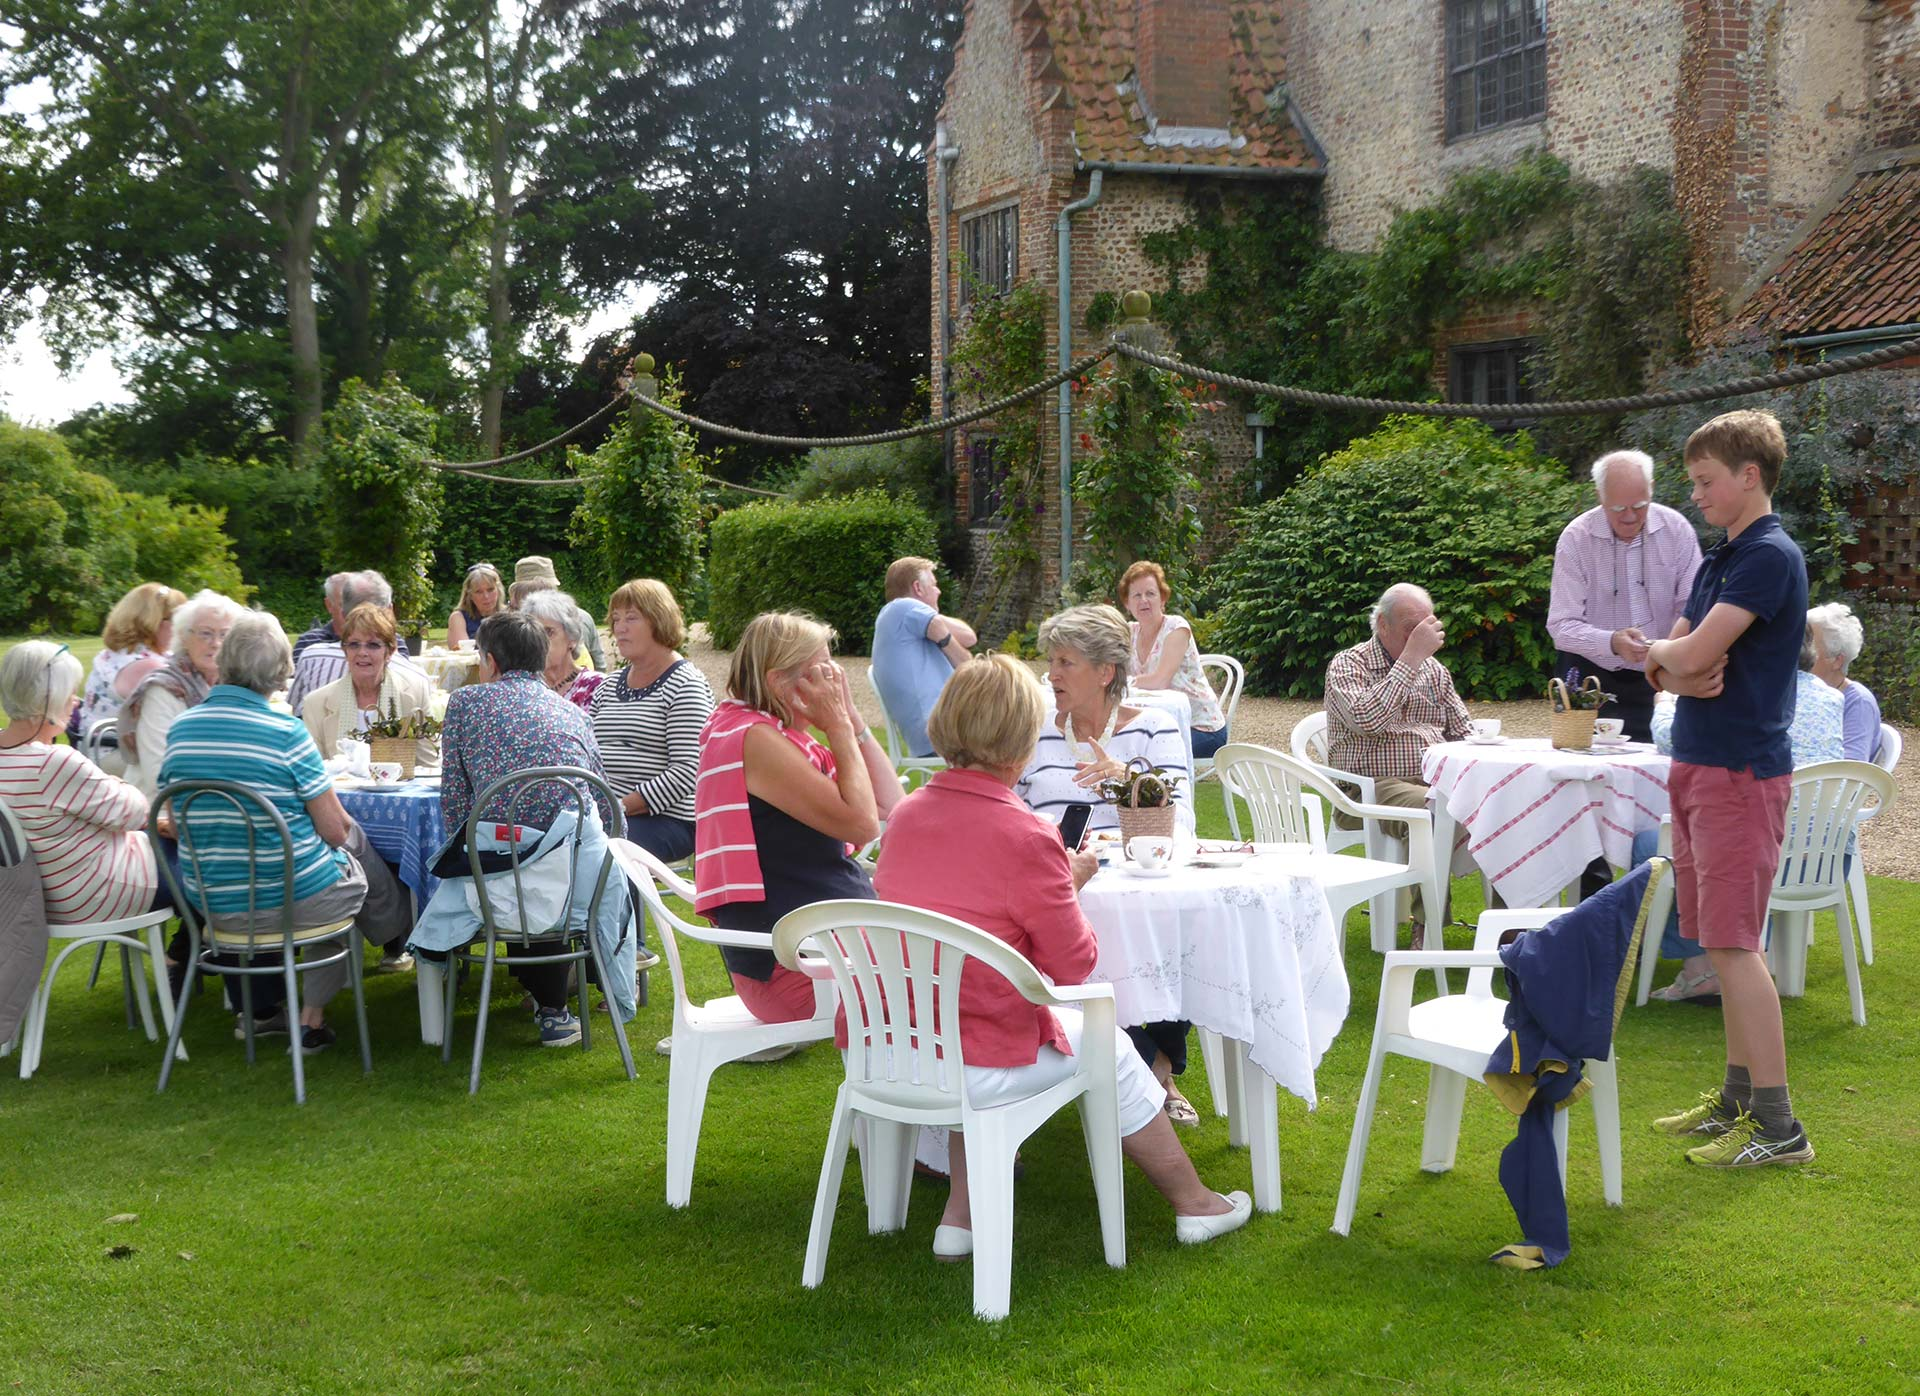 Garden Groups at Hindringham Hall, Norfolk